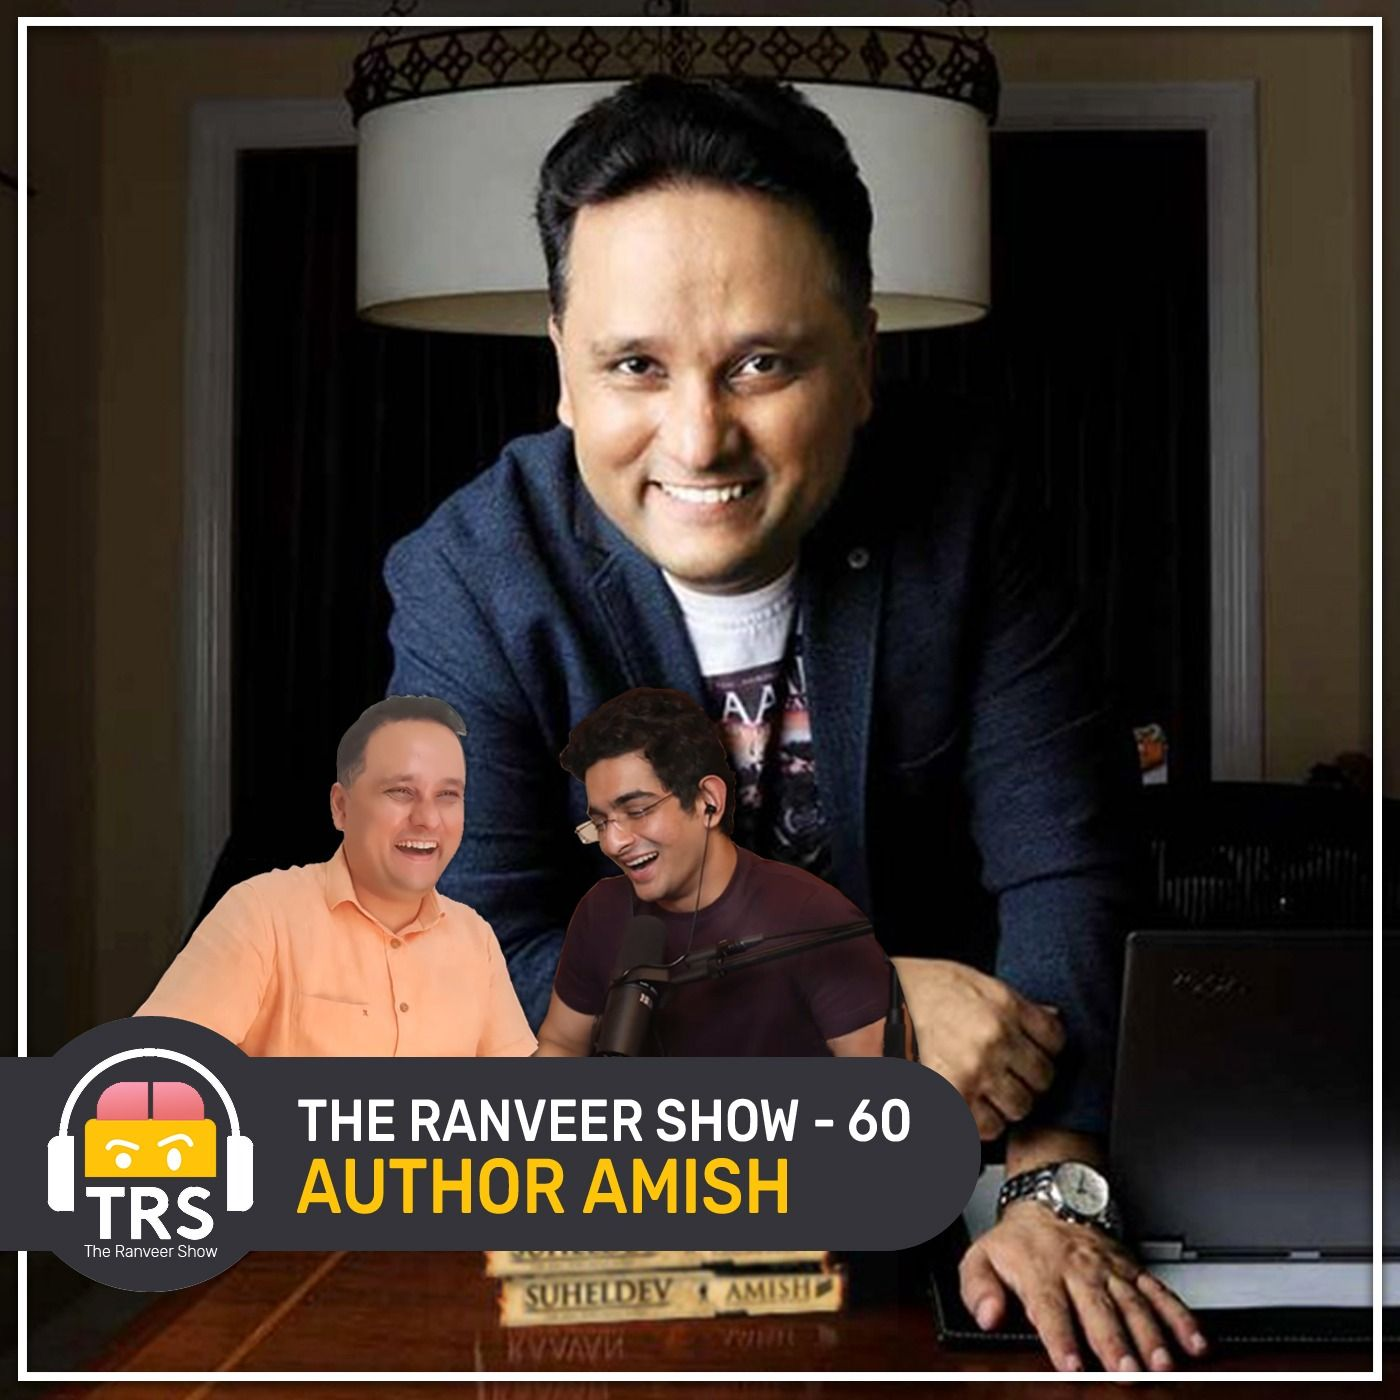 Author Amish On Ancient Indian Secrets, Mythology & Creativity | The Ranveer Show 60